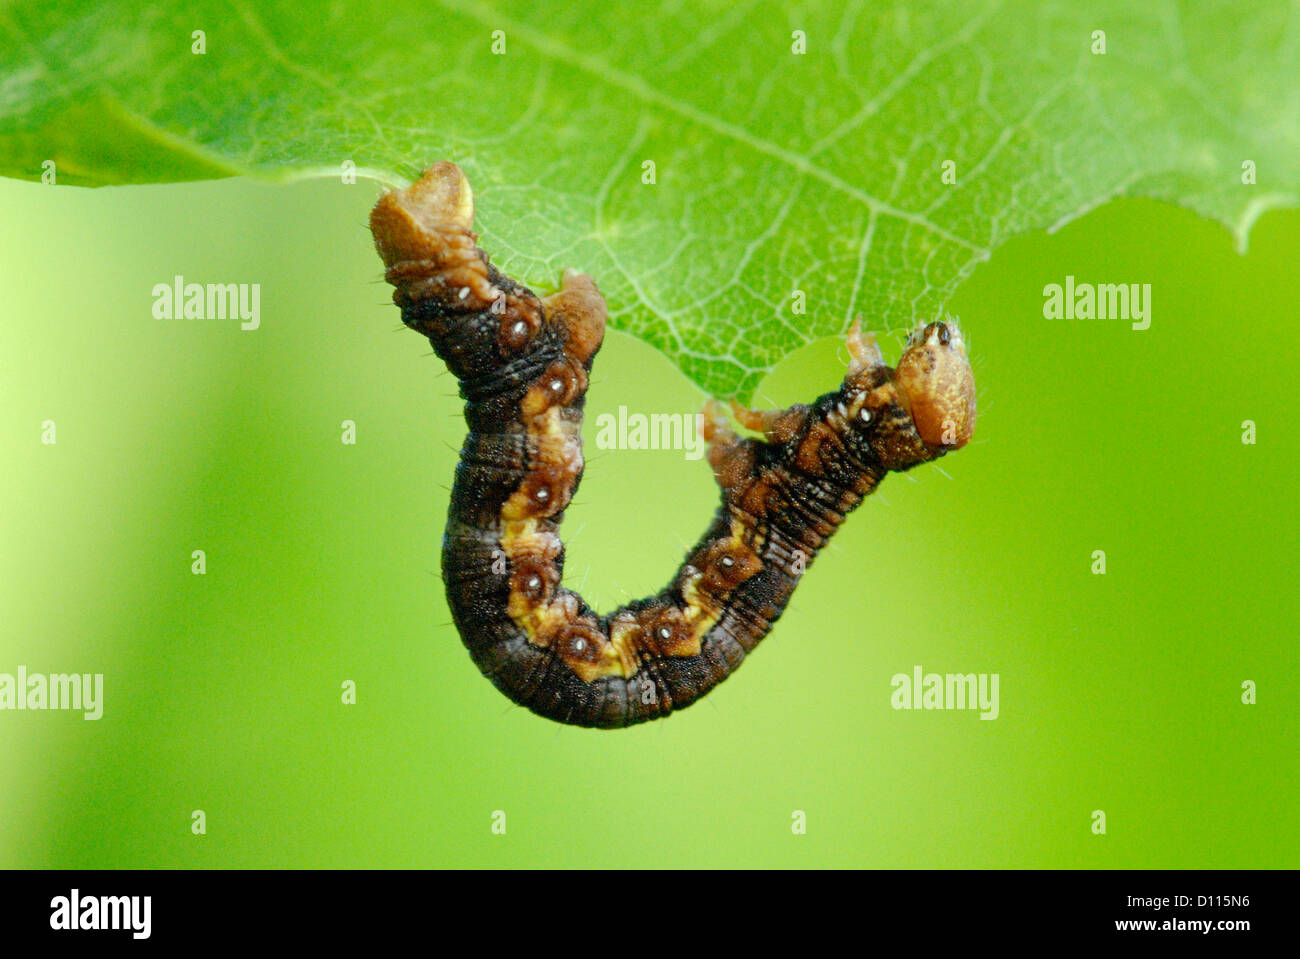 Mottled Umber caterpillar (Erannis defoliaria) feeding on an oak leaf - Stock Image